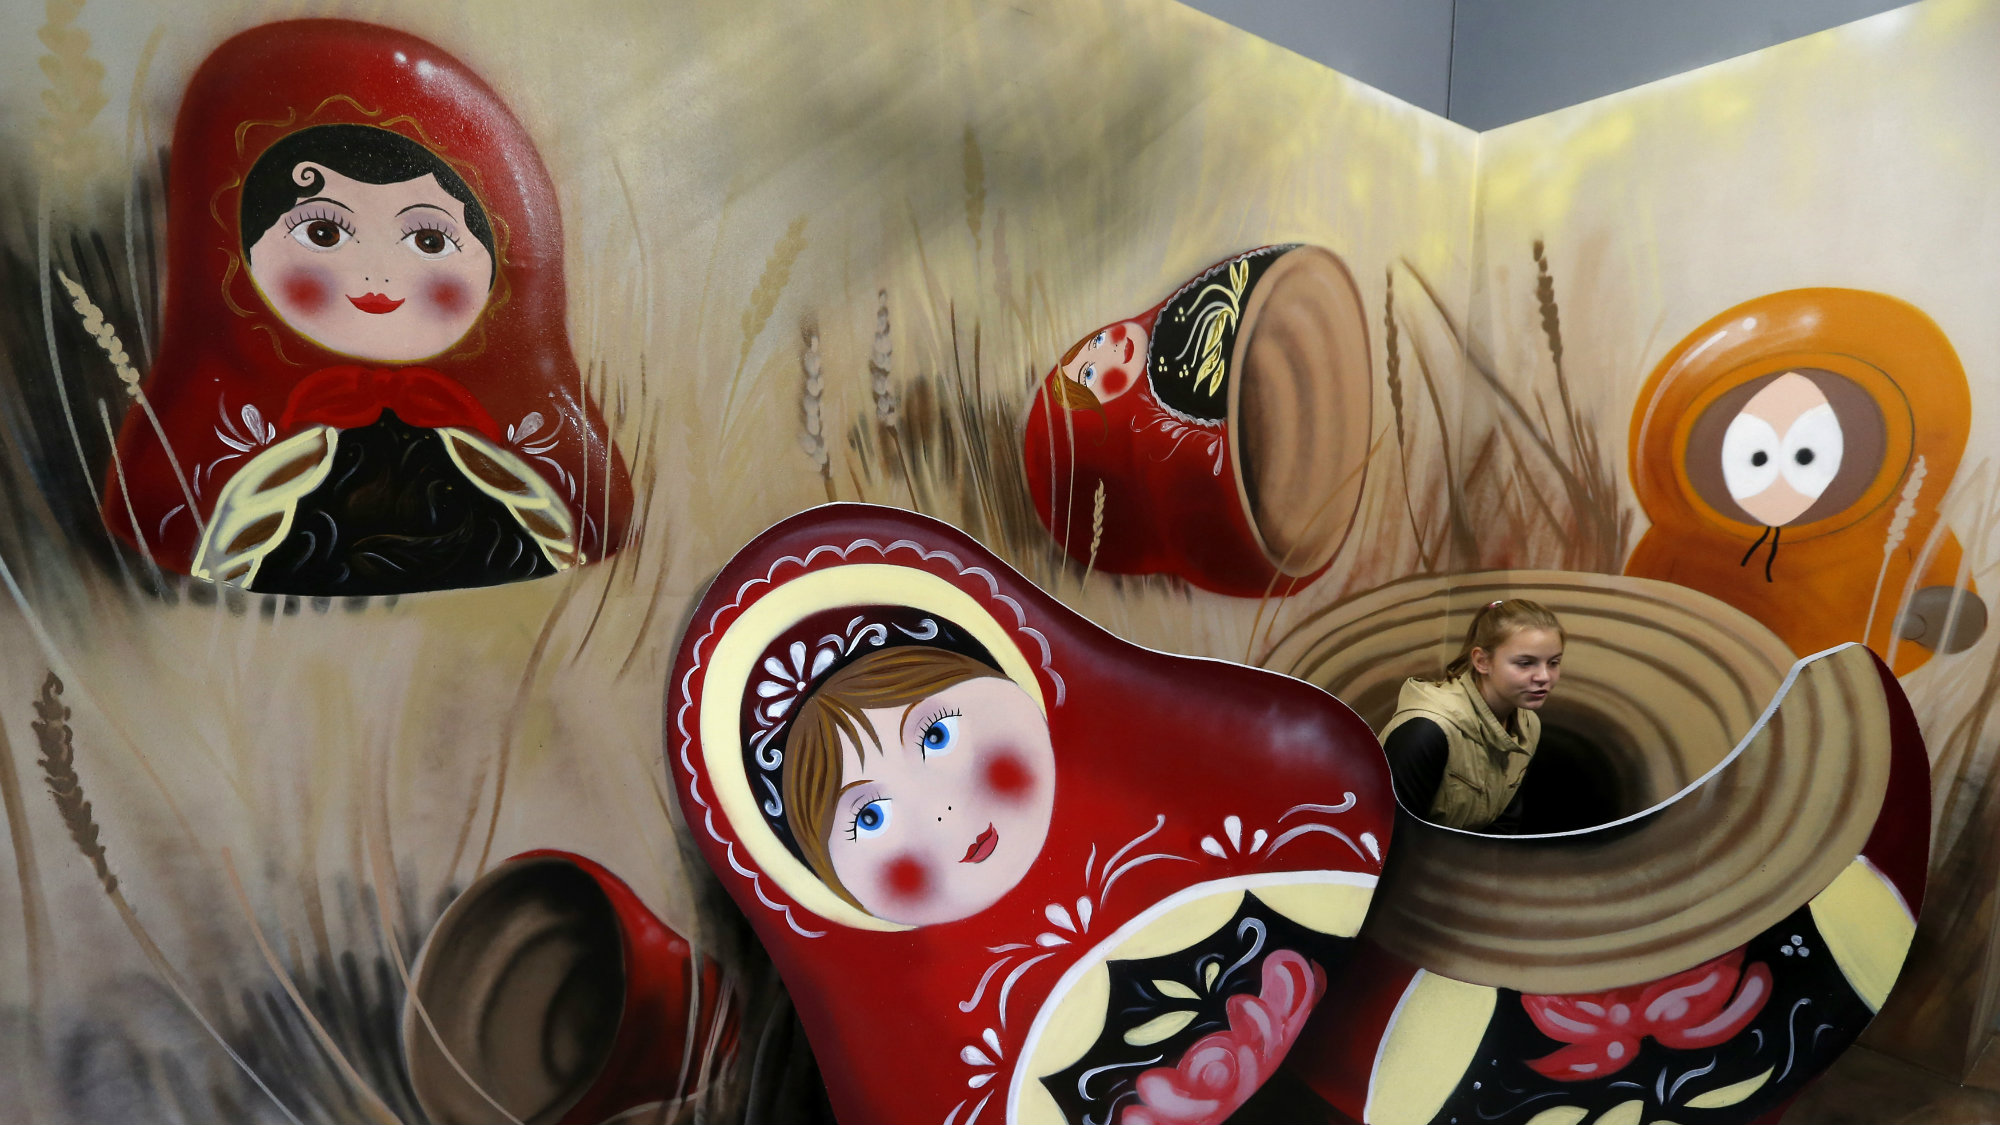 A girl looks at an art installation depicting Matryoshka dolls, or Russian nesting dolls, at the Museum of Optical Illusions in St. Petersburg, October 7, 2014. The museum offers visitors a chance to become involved in their 3D installations, according to local media. REUTERS/Alexander Demianchuk (RUSSIA - Tags: SOCIETY)